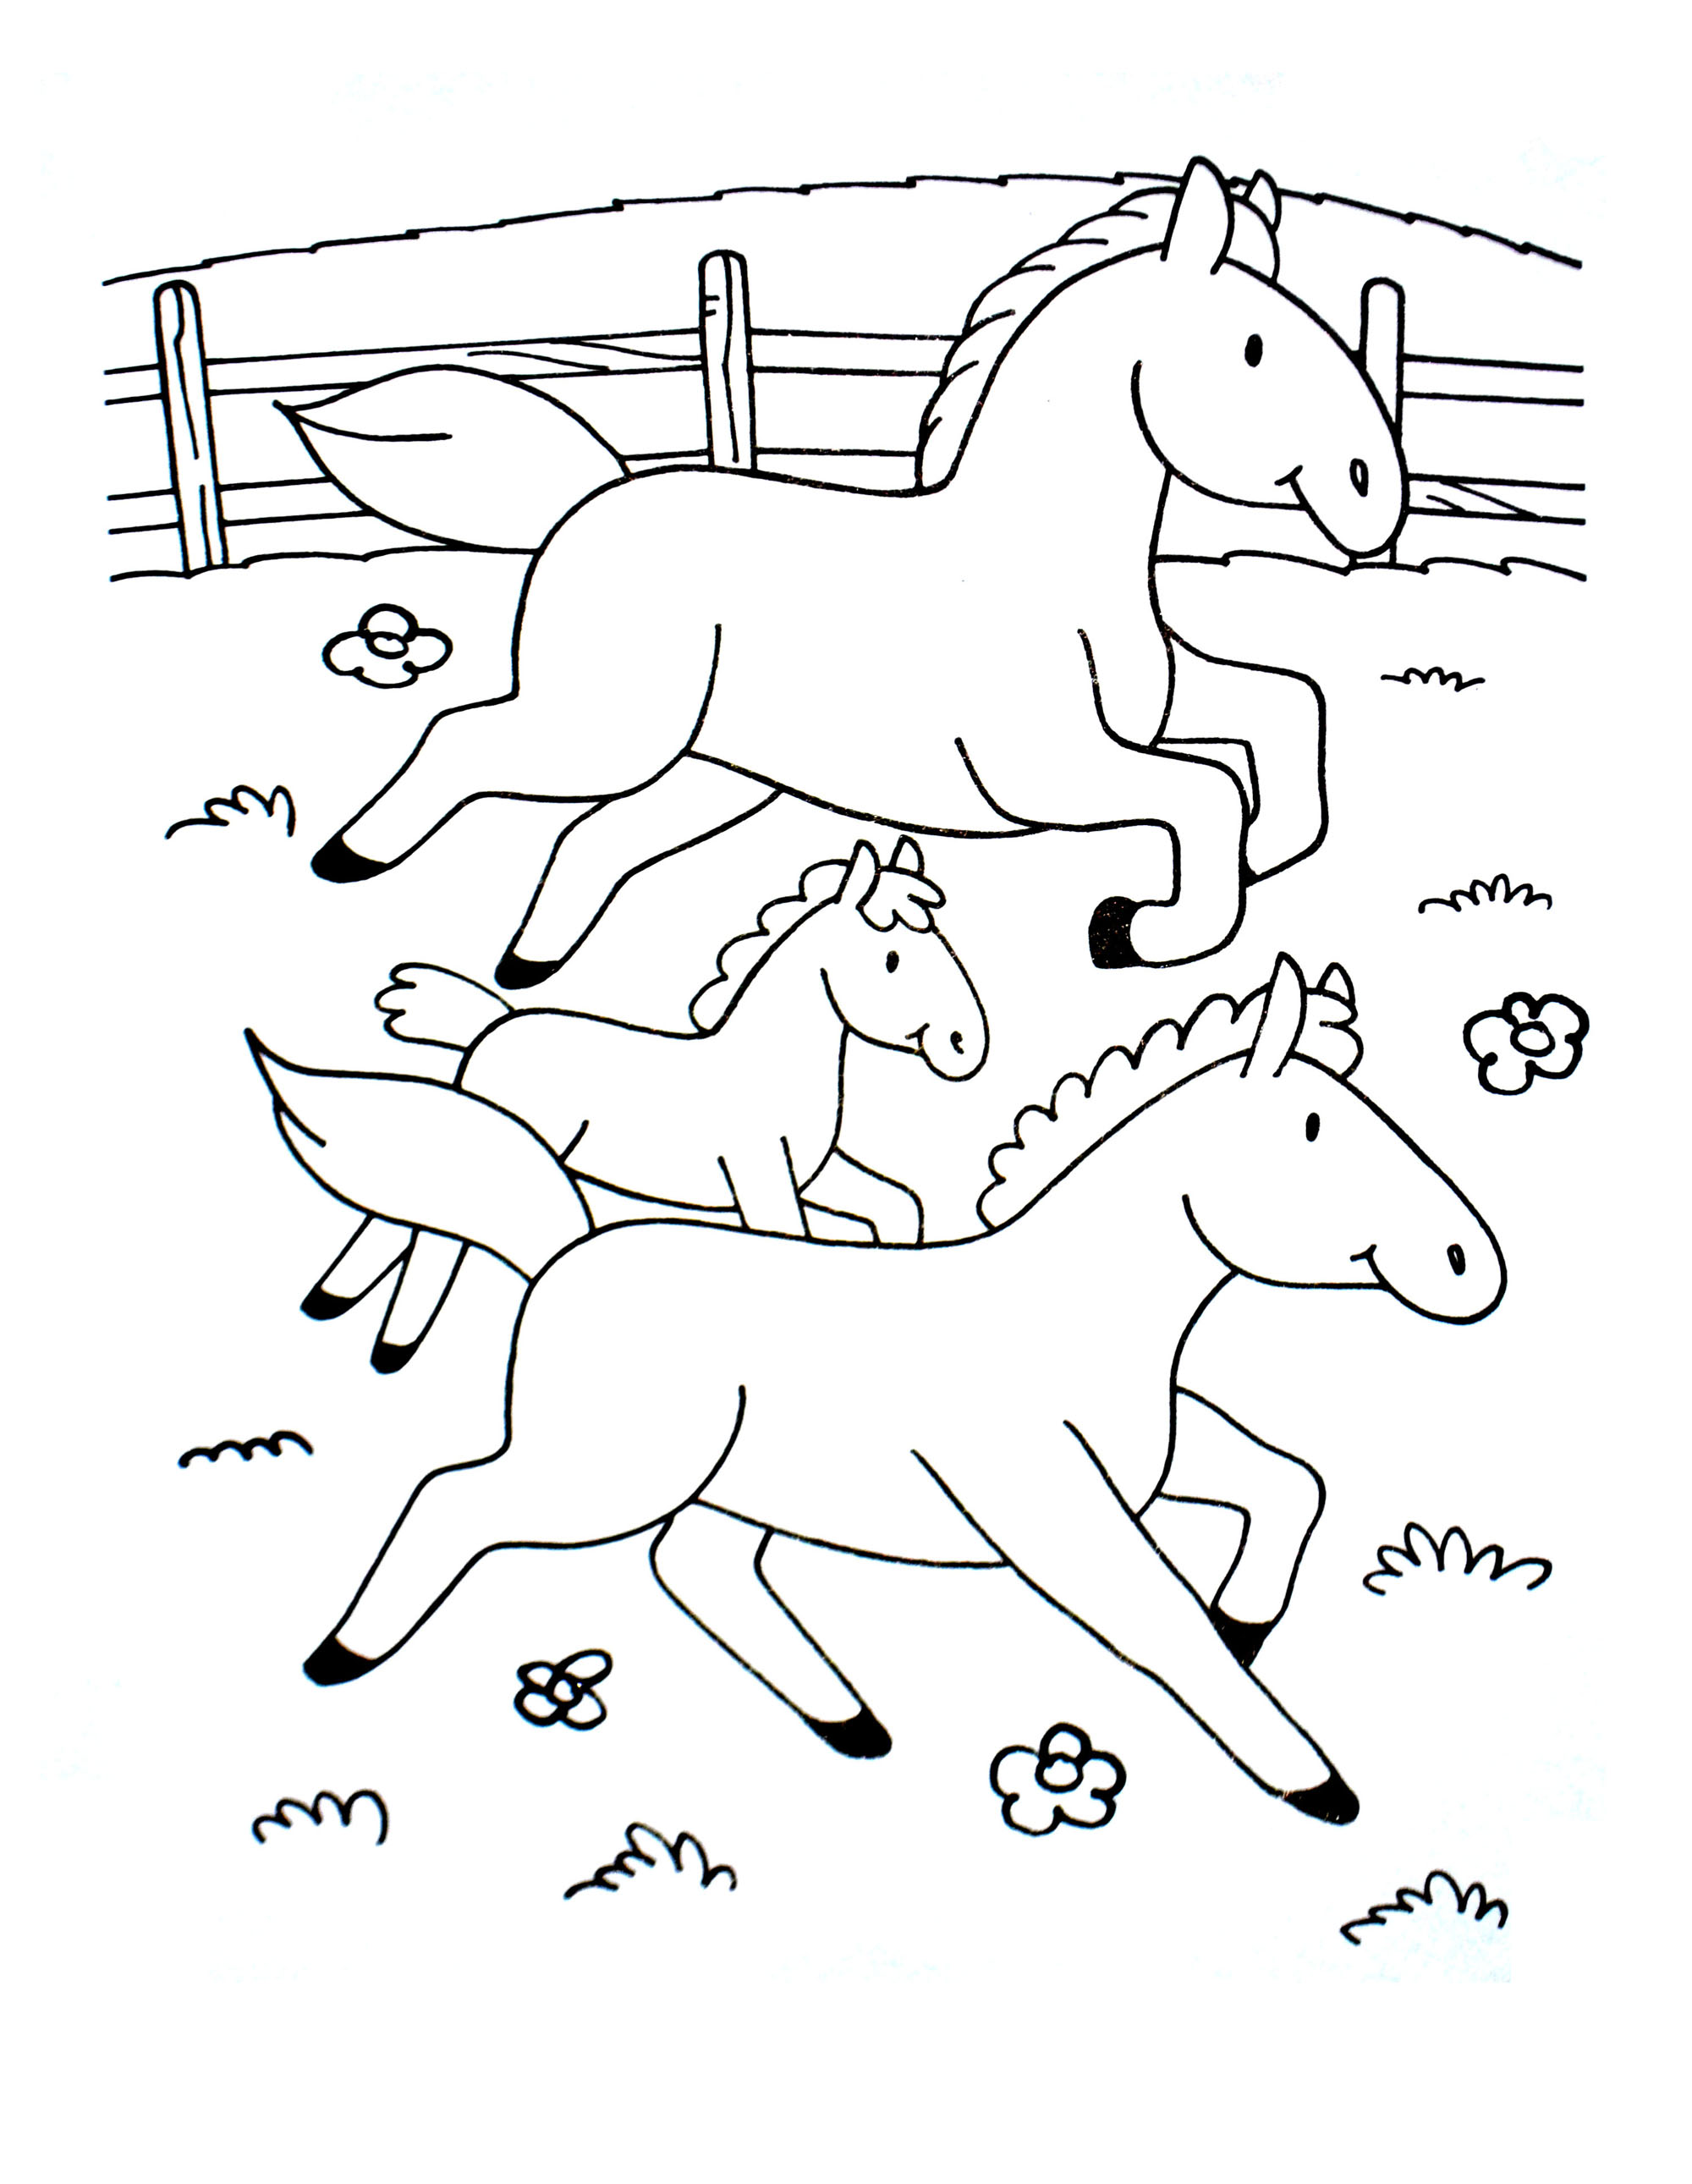 Horse to color for kids : Simple drawing - Horses Kids ...